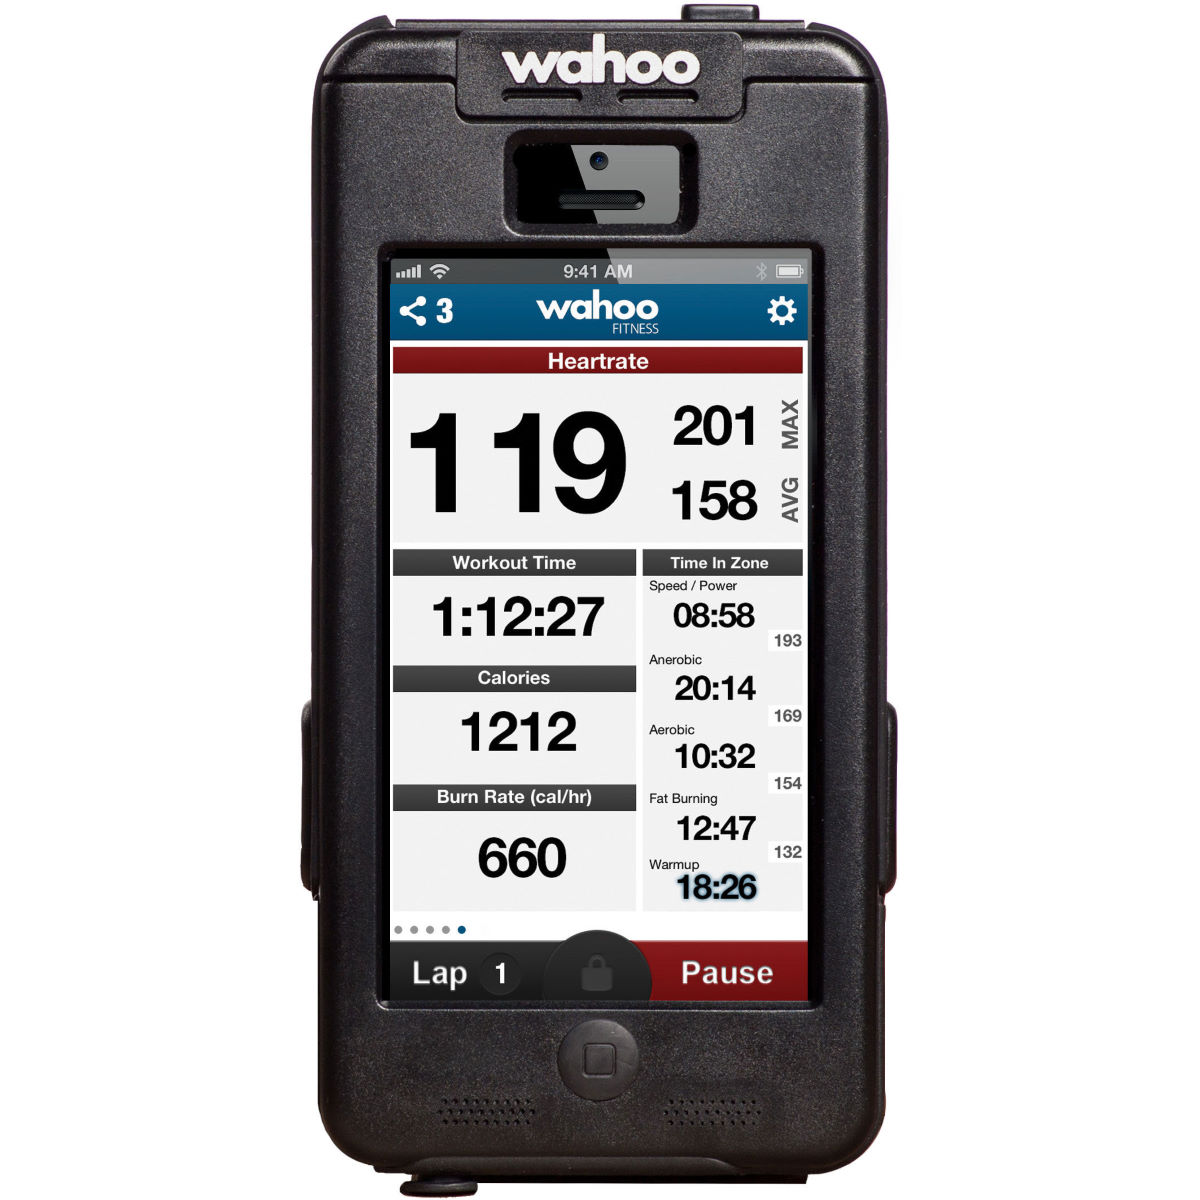 Wahoo PROTKT Bike Mount And Case For iPhone 5/5S